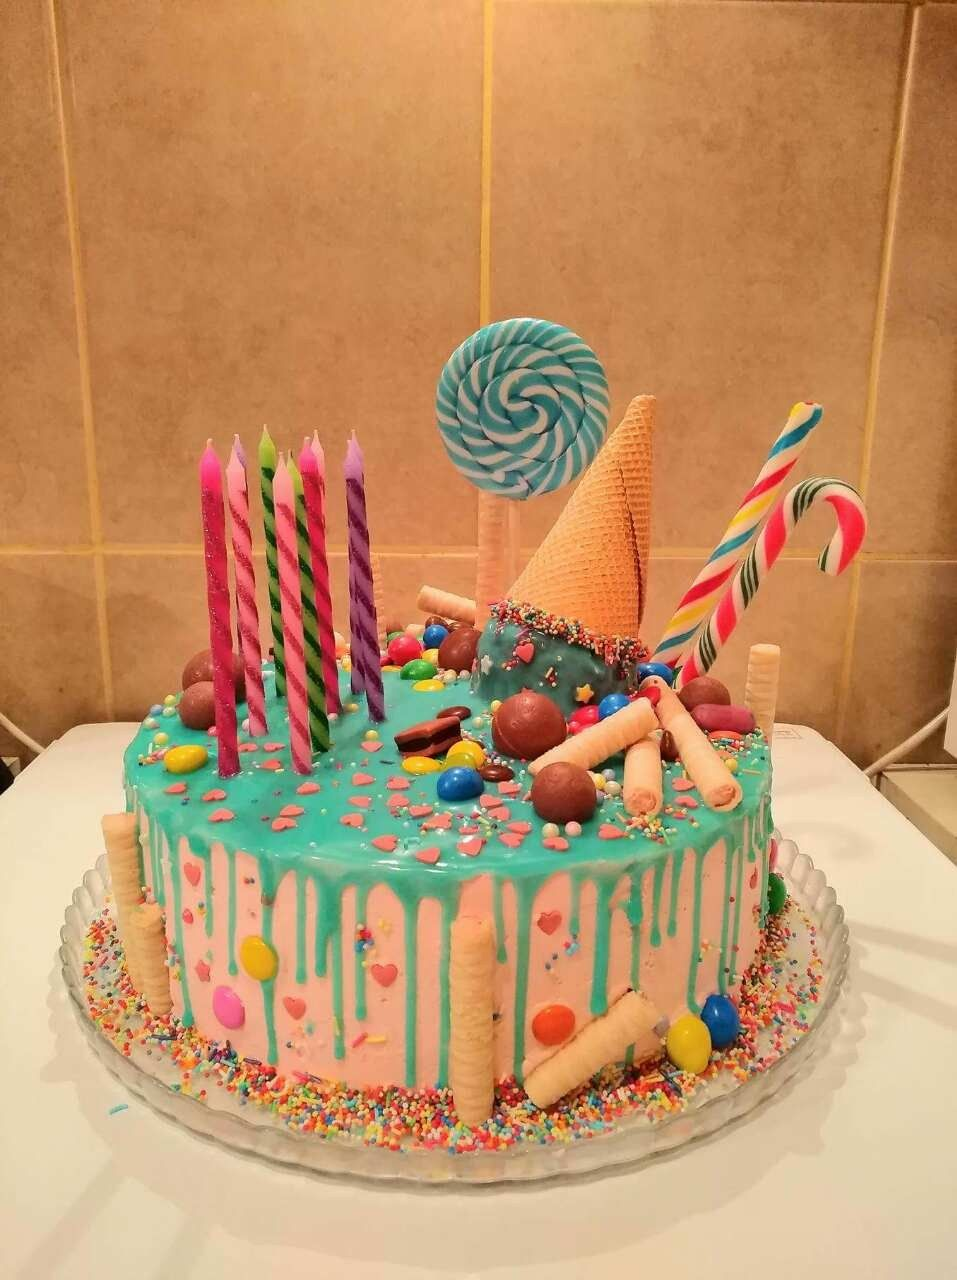 Enjoyable 27 Great Picture Of Homemade Birthday Cakes Homemade Cakes Personalised Birthday Cards Veneteletsinfo